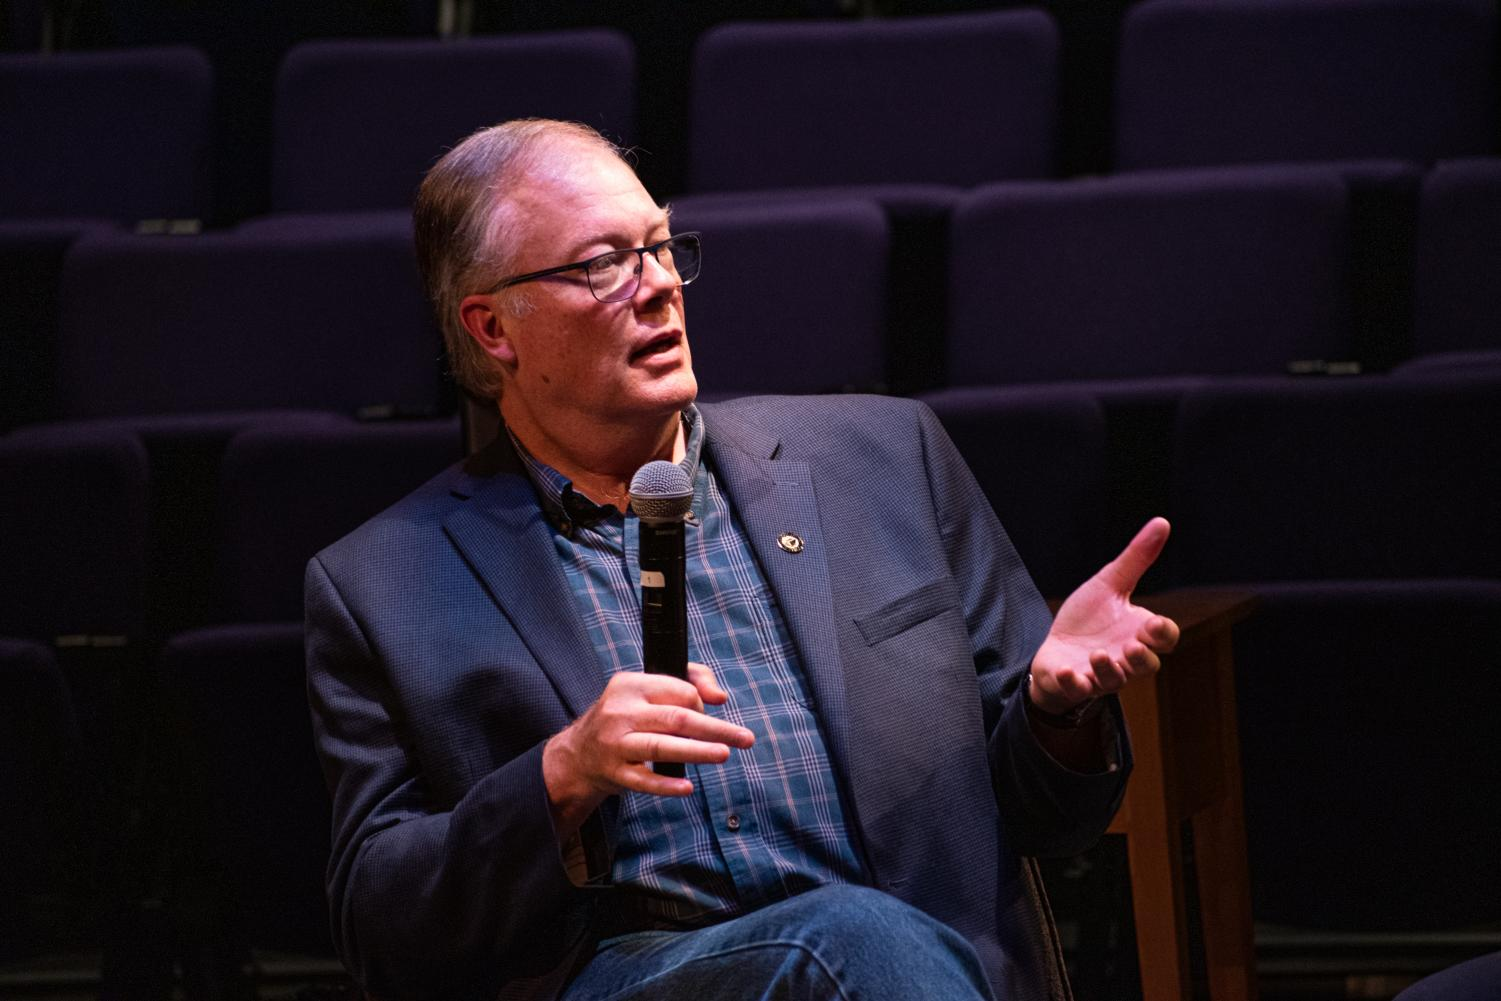 The panel featured James Marten, department chair and professor of history at Marquette.